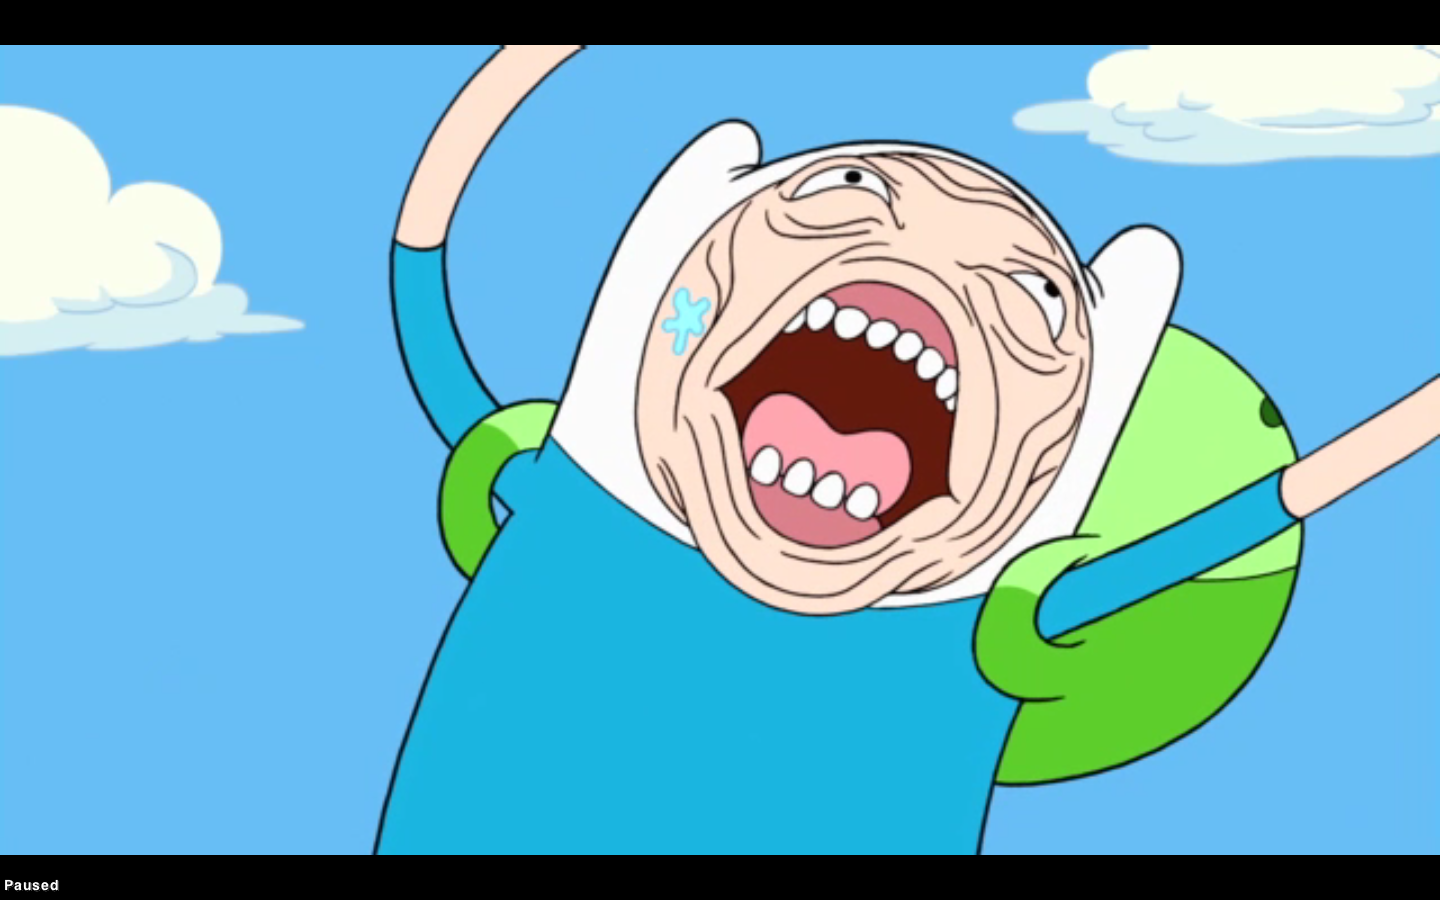 Time Wallpaper 1440x900 Adventure Time With Finn And Jake Finn 1440x900